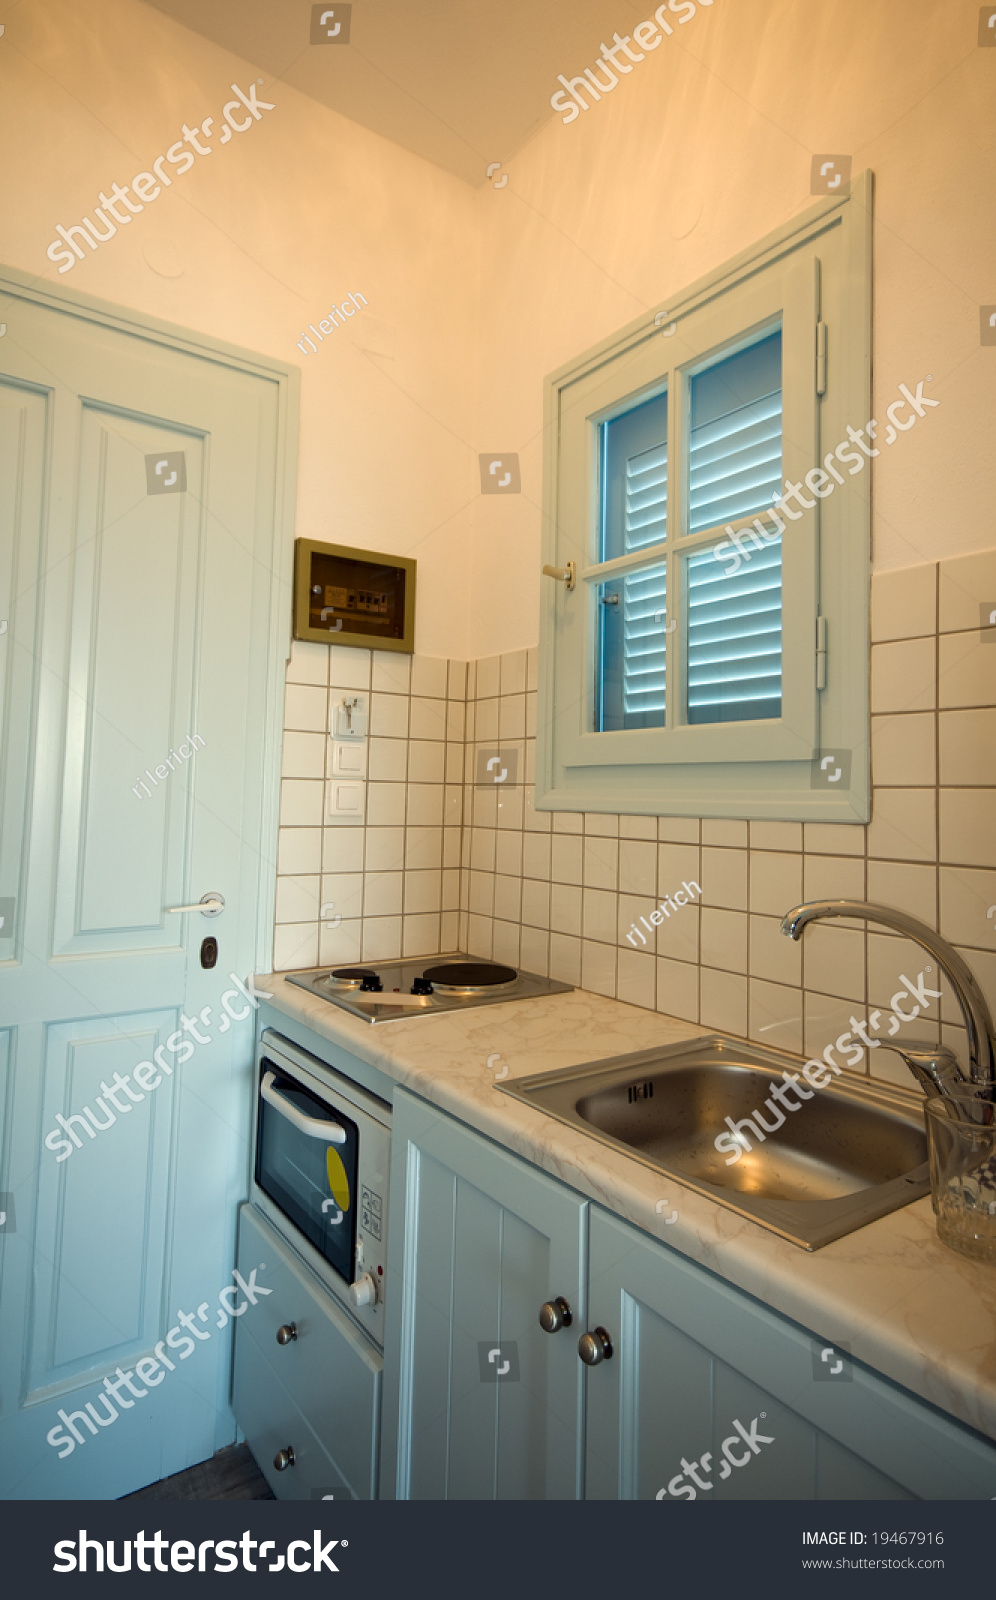 Efficiency Kitchen Typical Small Compact Kitchen In Apartment Efficiency Motel With